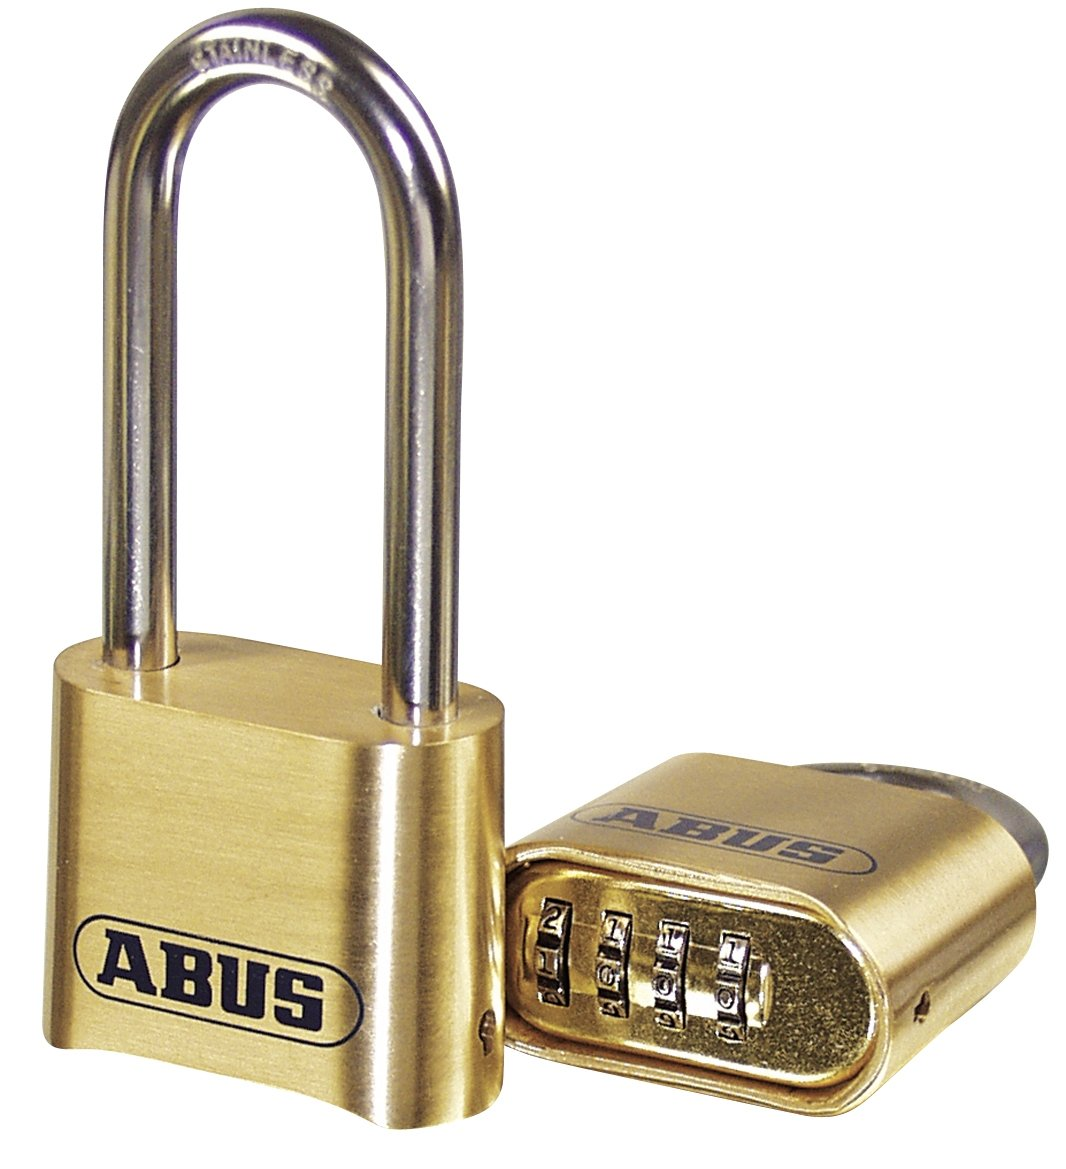 ABUS 180/50 Solid Brass Combination Padlock - Long Stainless Steel Shackle (2-1/2'')